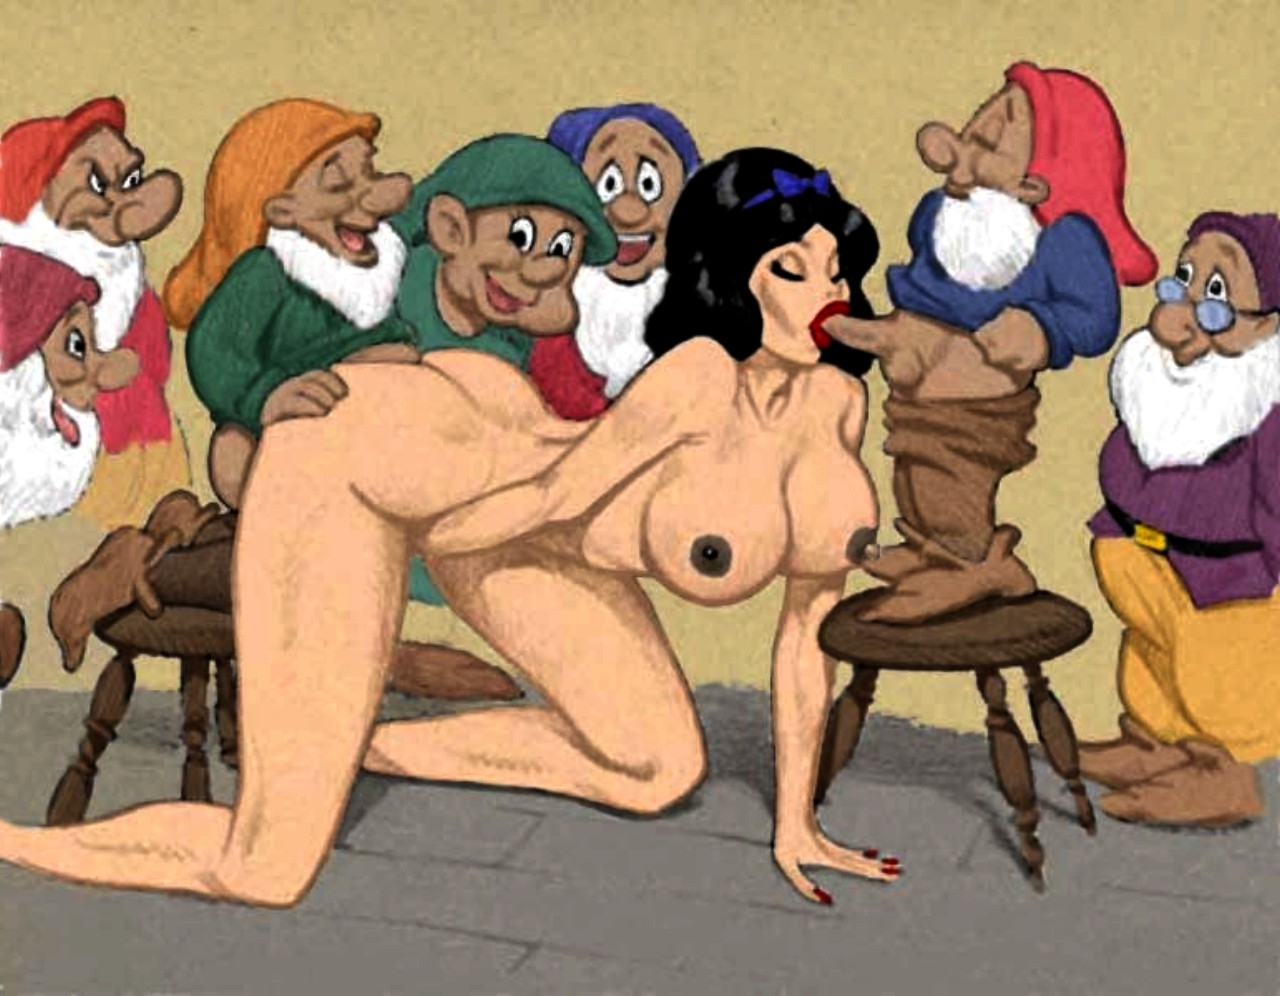 Fucked by tiny dwarf cartoon sexy scene